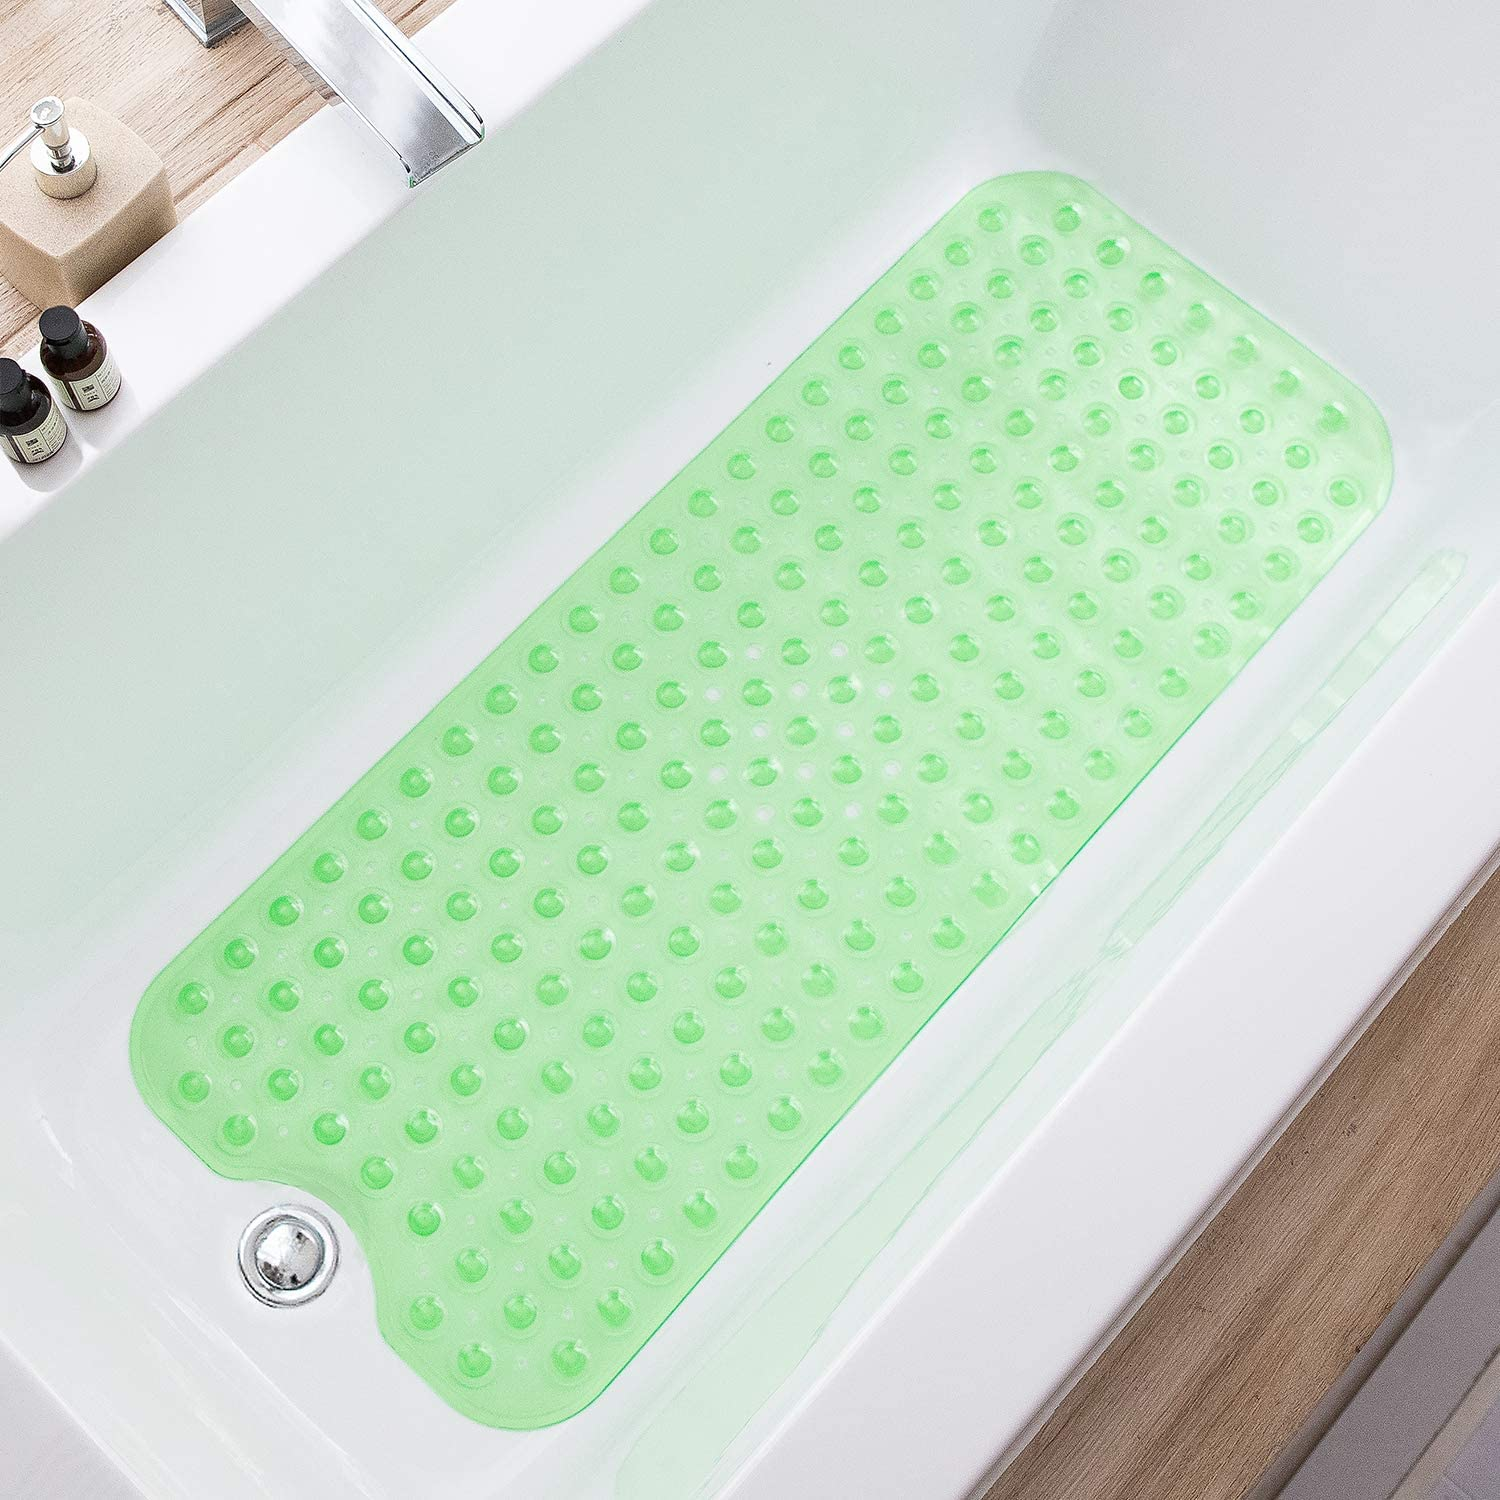 TEESHLY Bathtub Mats for Shower Tub Extra Long Non-Slip Bath Mat, 39 x 16 Inch Shower Mat with Drain Holes and Suction Cups, Bath Tub Mat for Bathroom with Machine Washable (Clear Green)